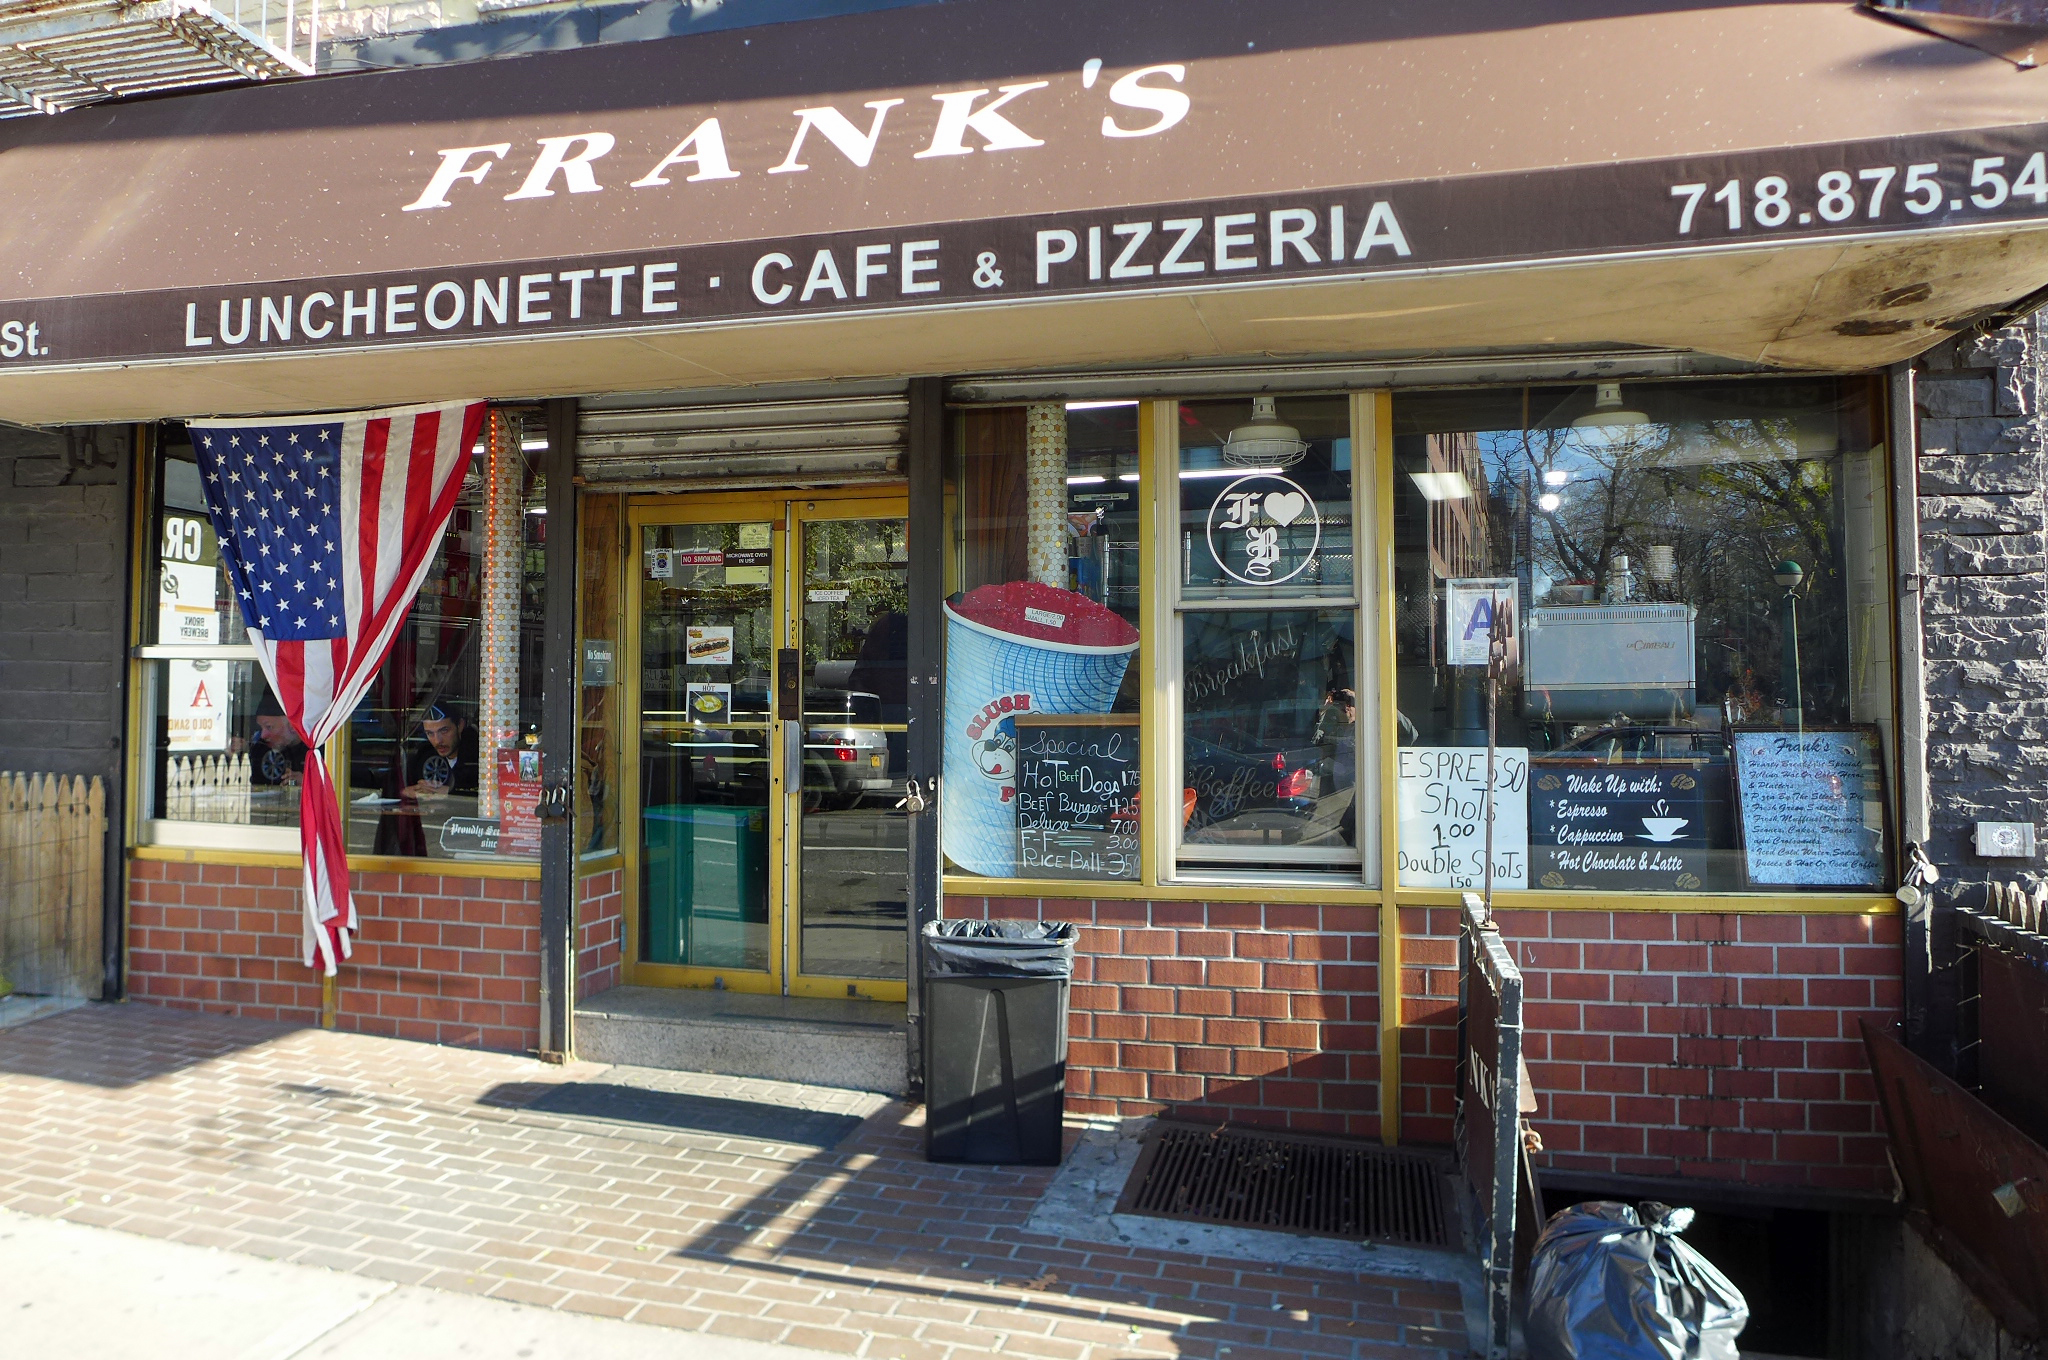 Frank's delivers what may be the city's best calzone